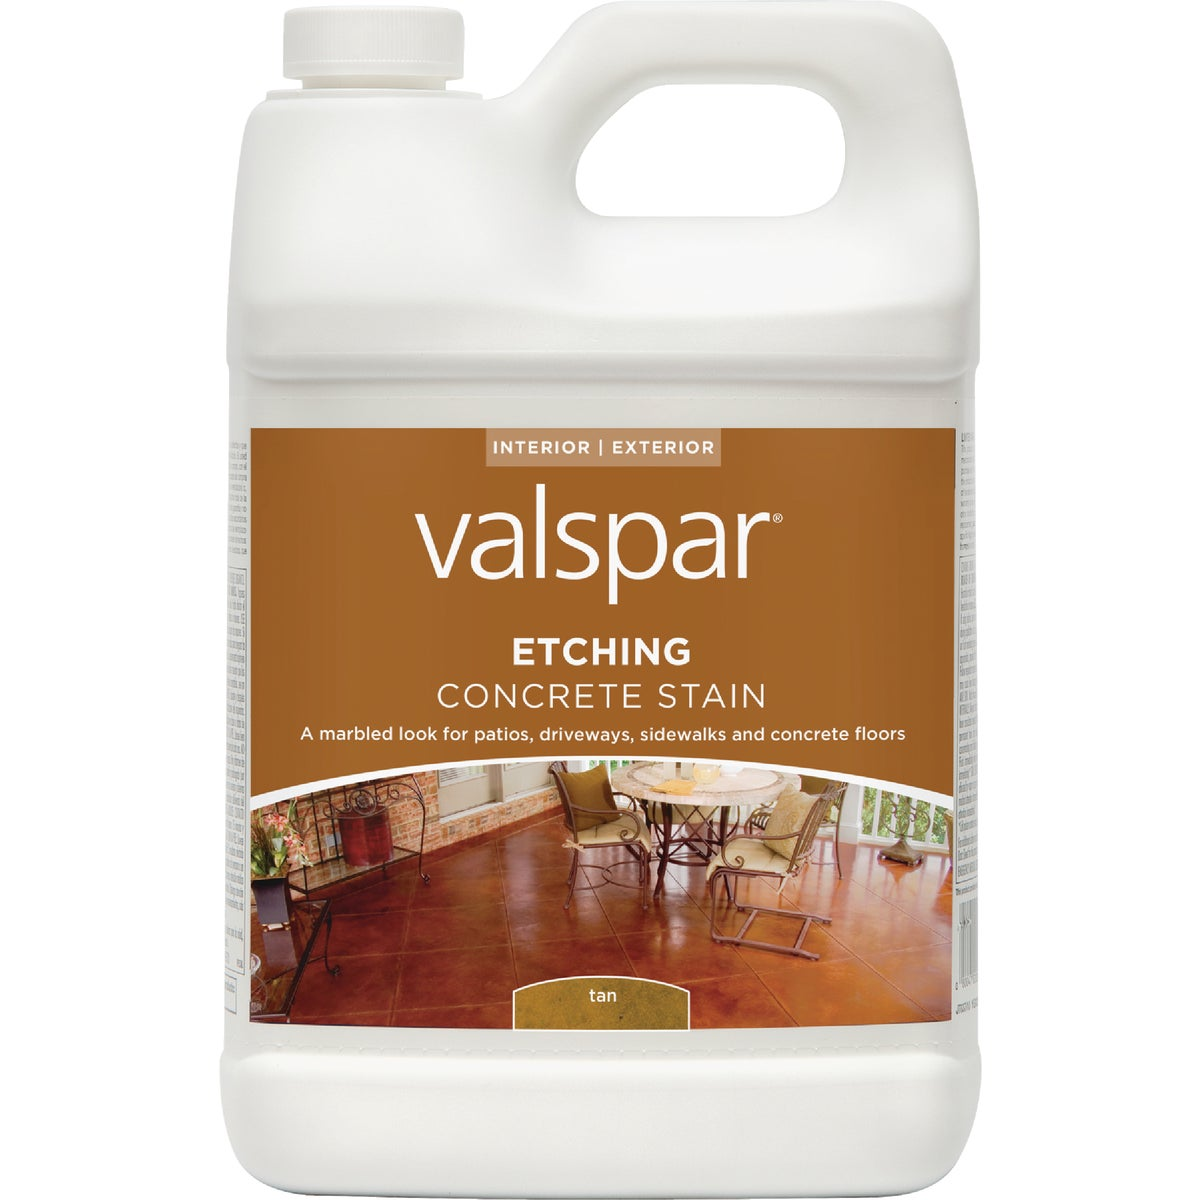 TAN ETCHING STAIN - 024.0082070.007 by Valspar Corp